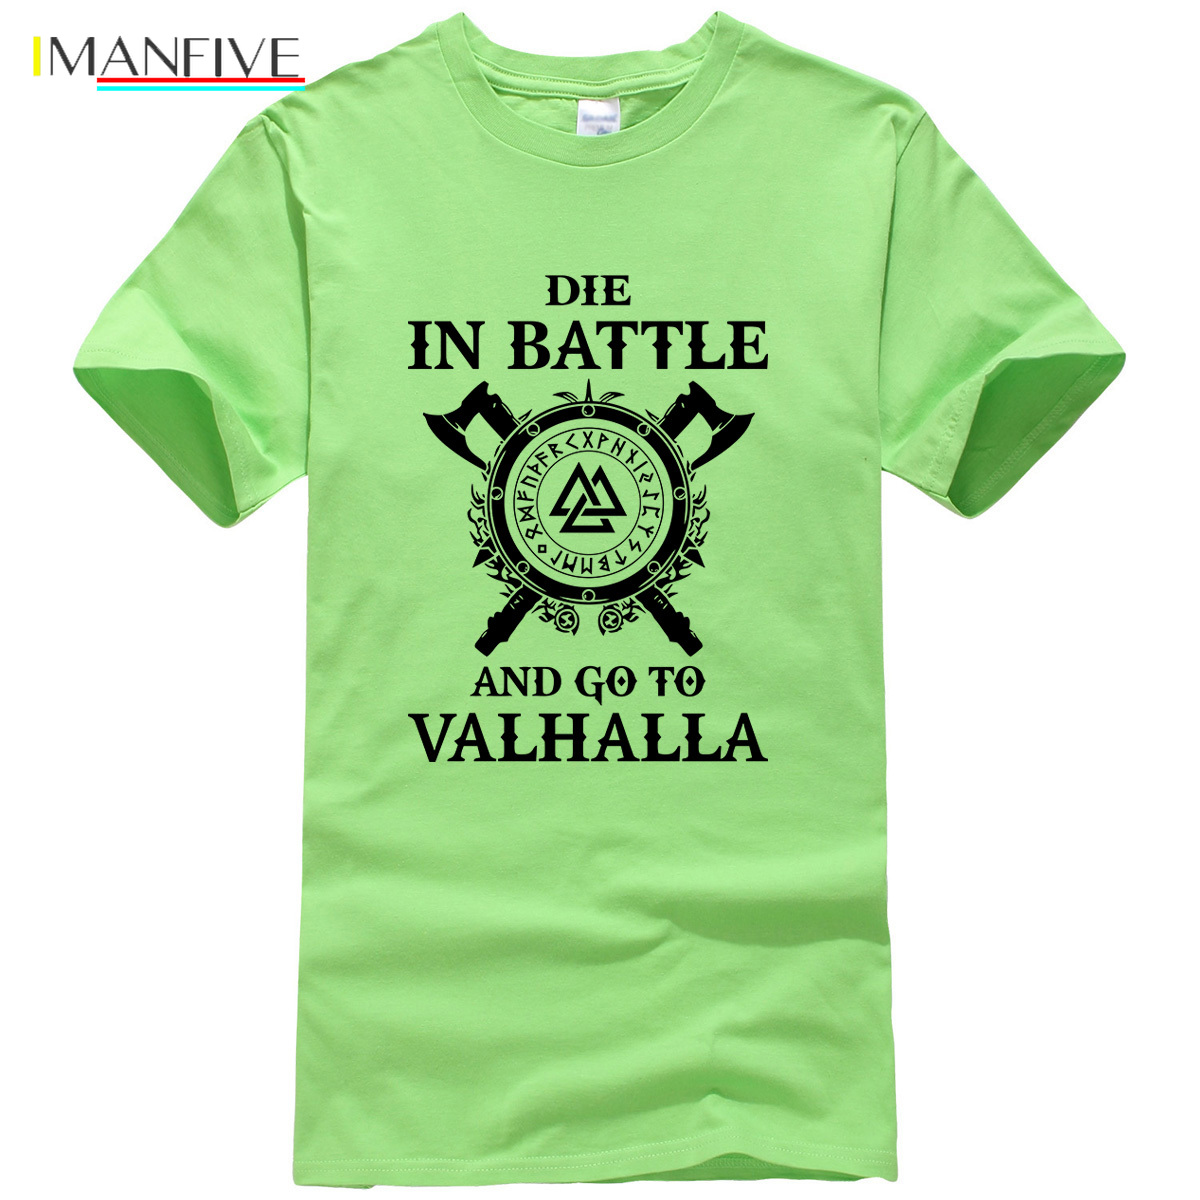 Summer 2019 New Fashion Vikings ODIN Top Men 39 s T shirts DIE IN BATTLE AND GO TO VALHALLA Funny T Shirt Men Harajuku Tops Tees in T Shirts from Men 39 s Clothing